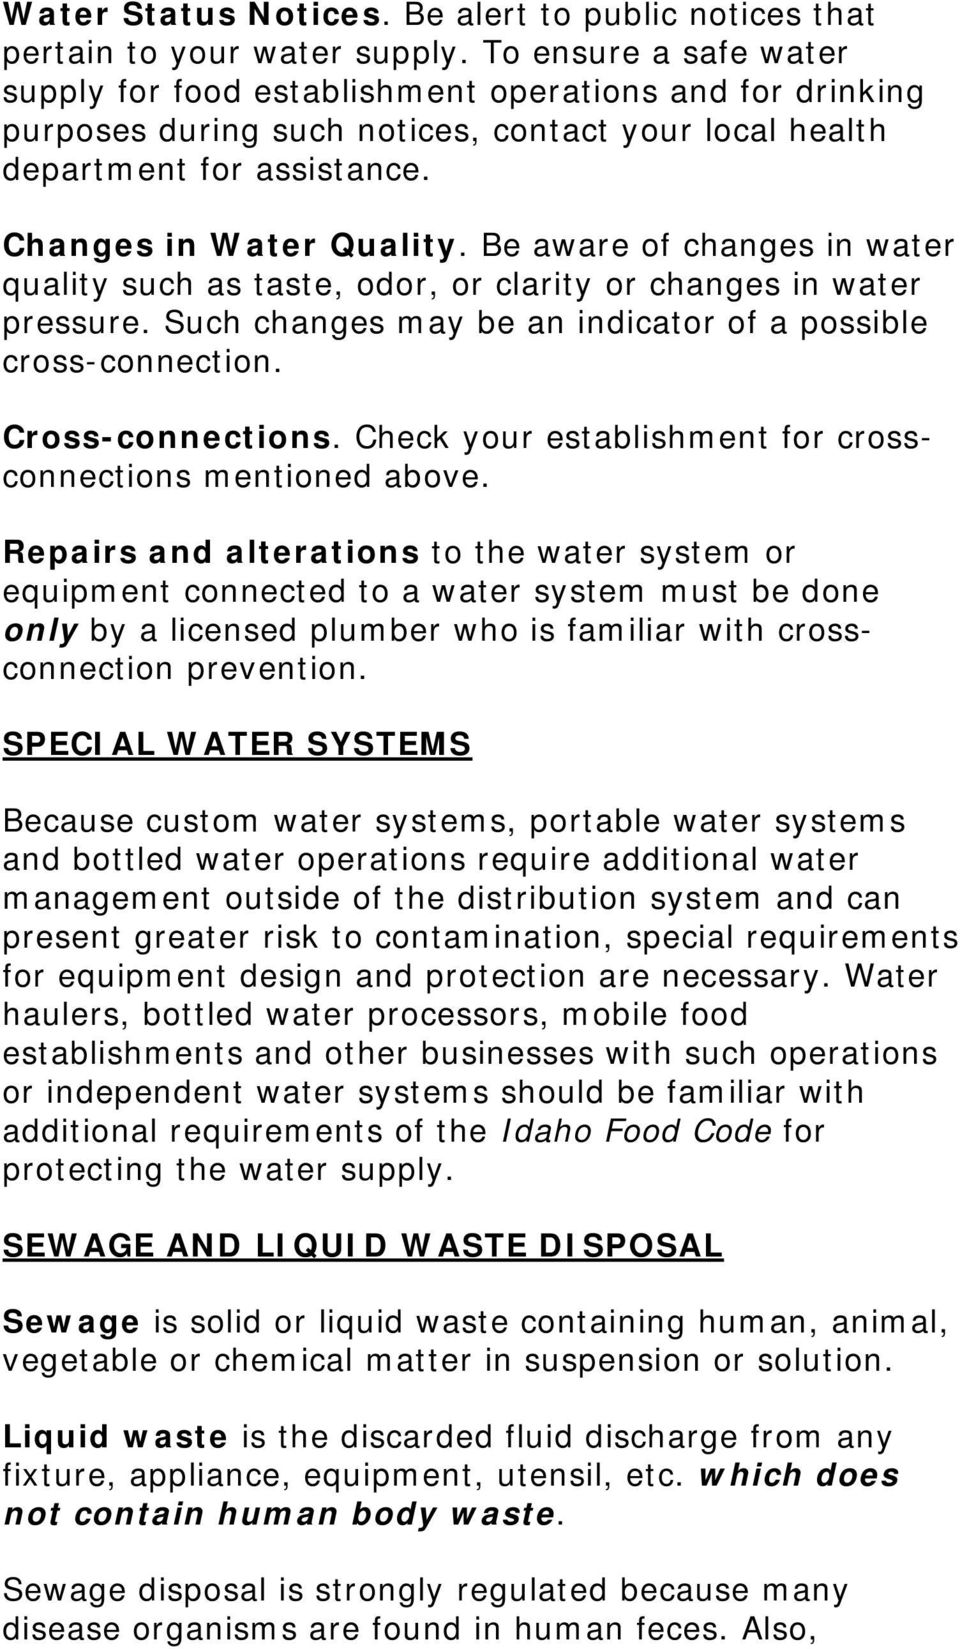 Be aware of changes in water quality such as taste, odor, or clarity or changes in water pressure. Such changes may be an indicator of a possible cross-connection. Cross-connections.